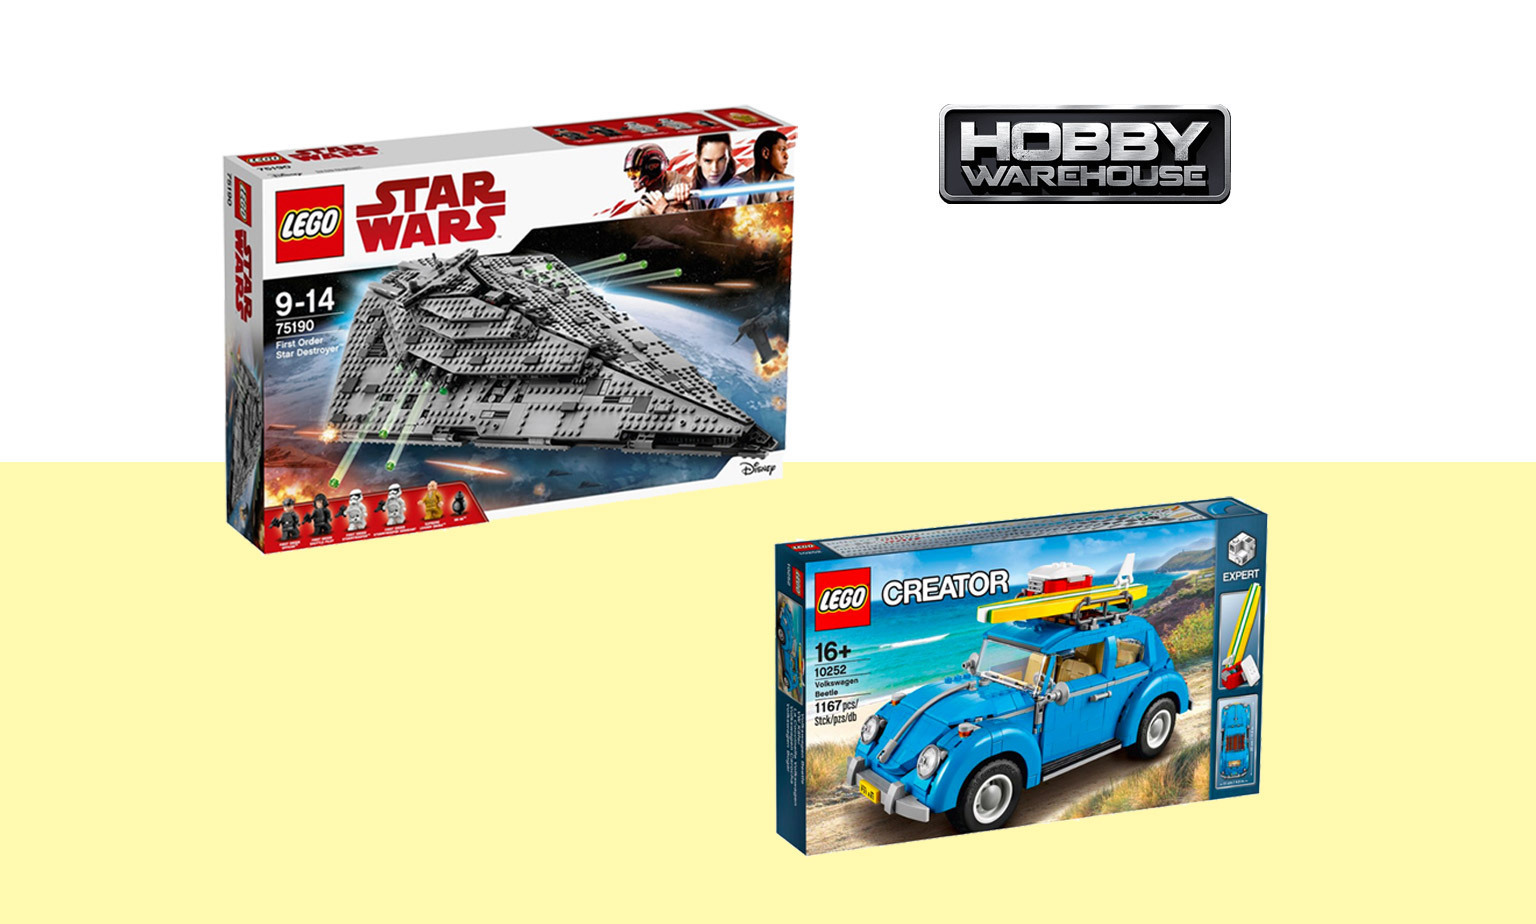 20% off LEGO at Hobby Warehouse*